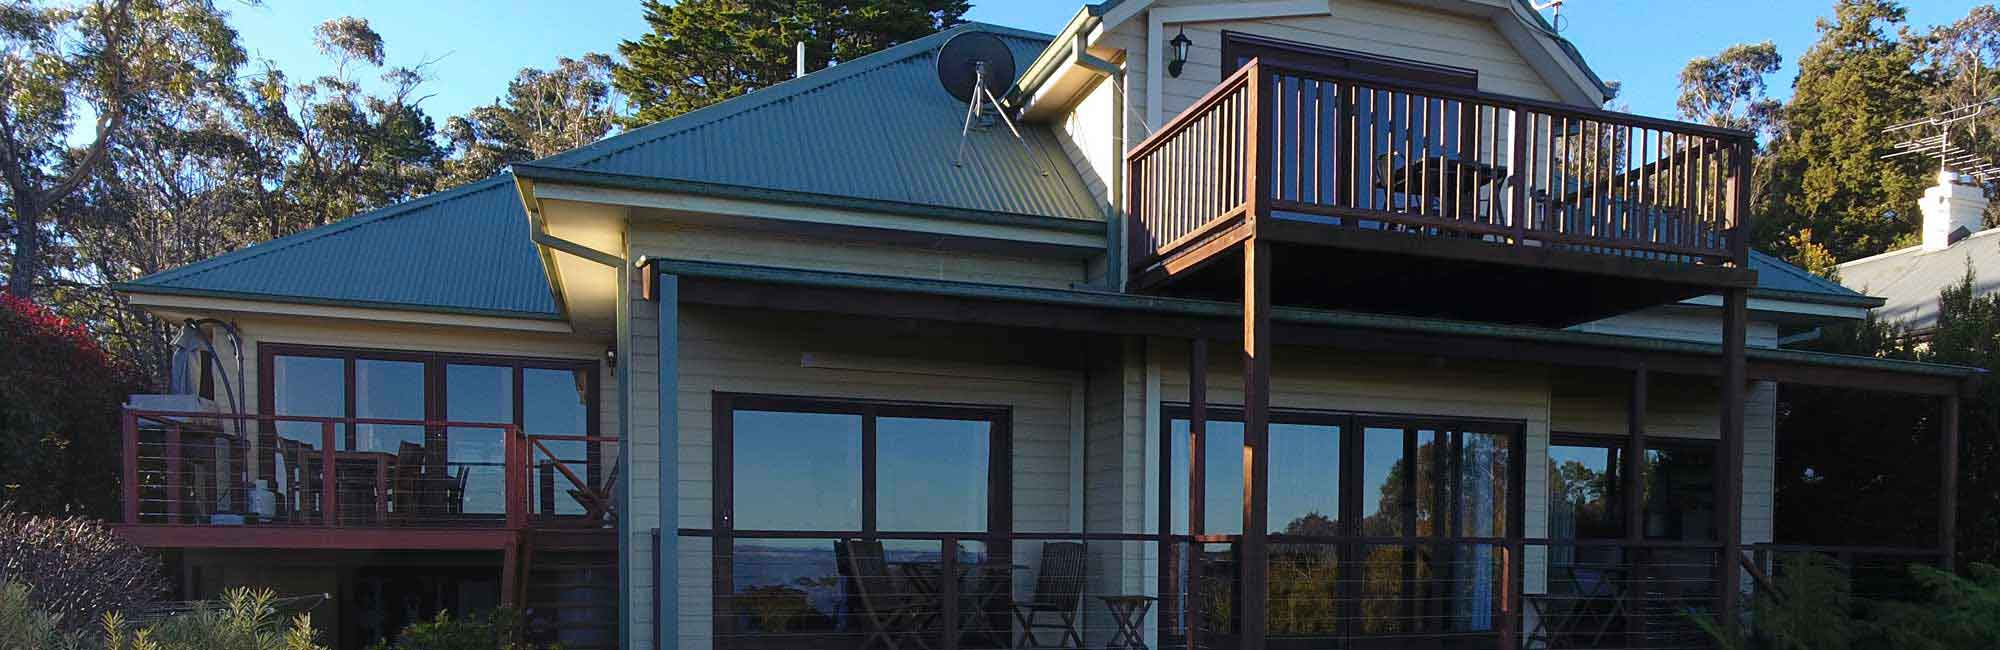 Wentworth Falls Accommodation